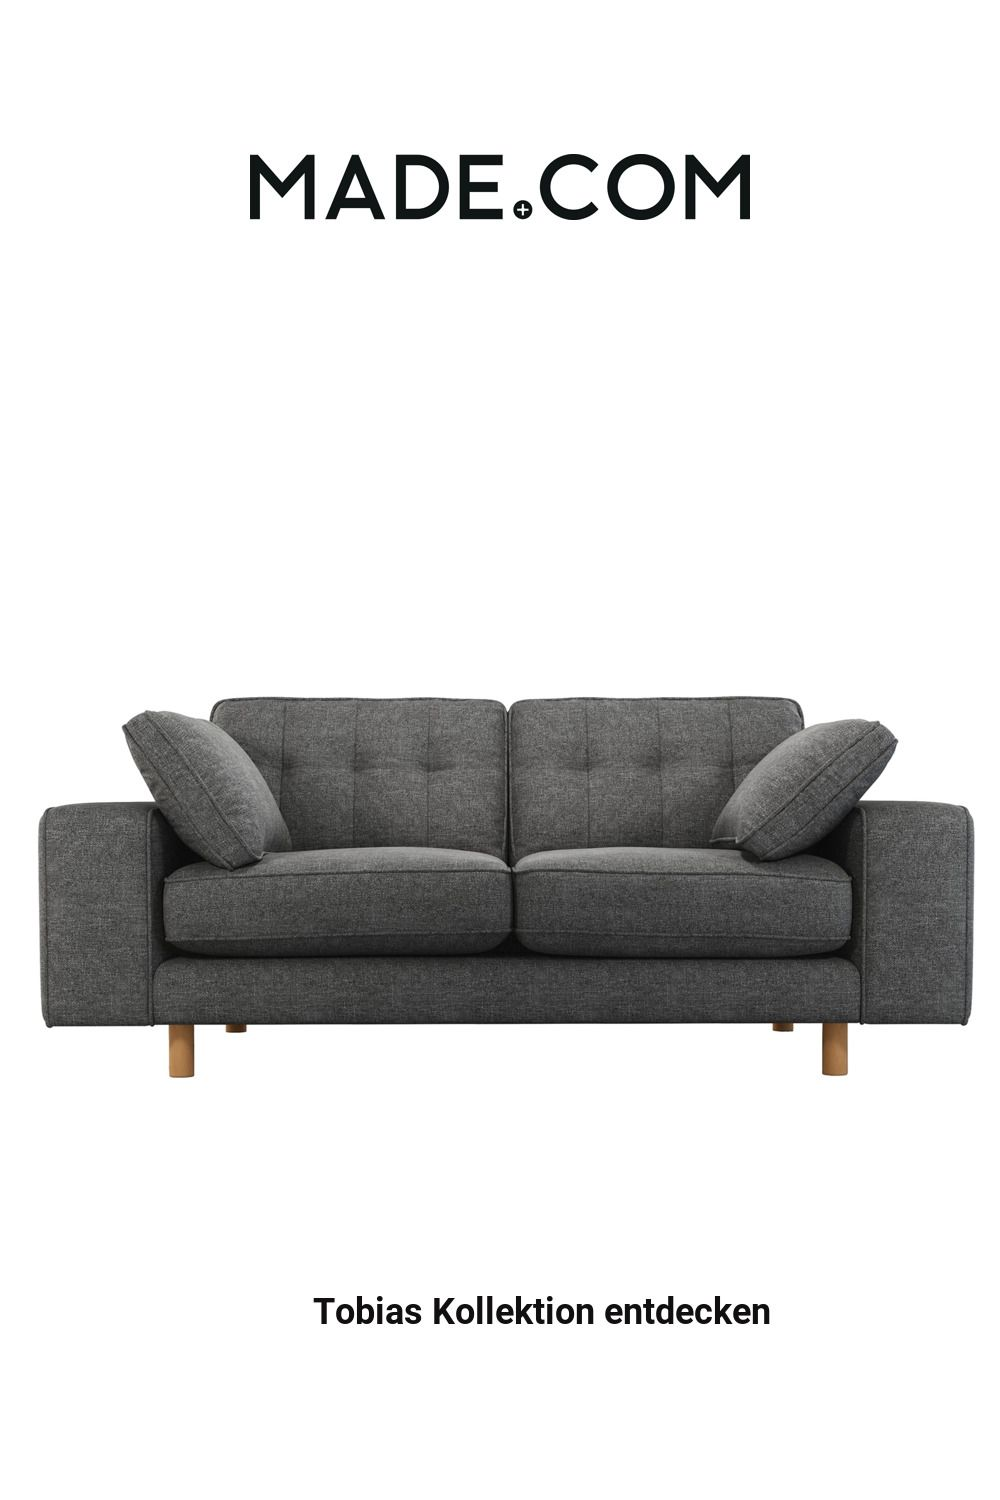 Content By Terence Conran Tobias 2 Sitzer Sofa Schiefergrau Helle Holzbeine In 2020 Sofa Sofa Texture Terence Conran